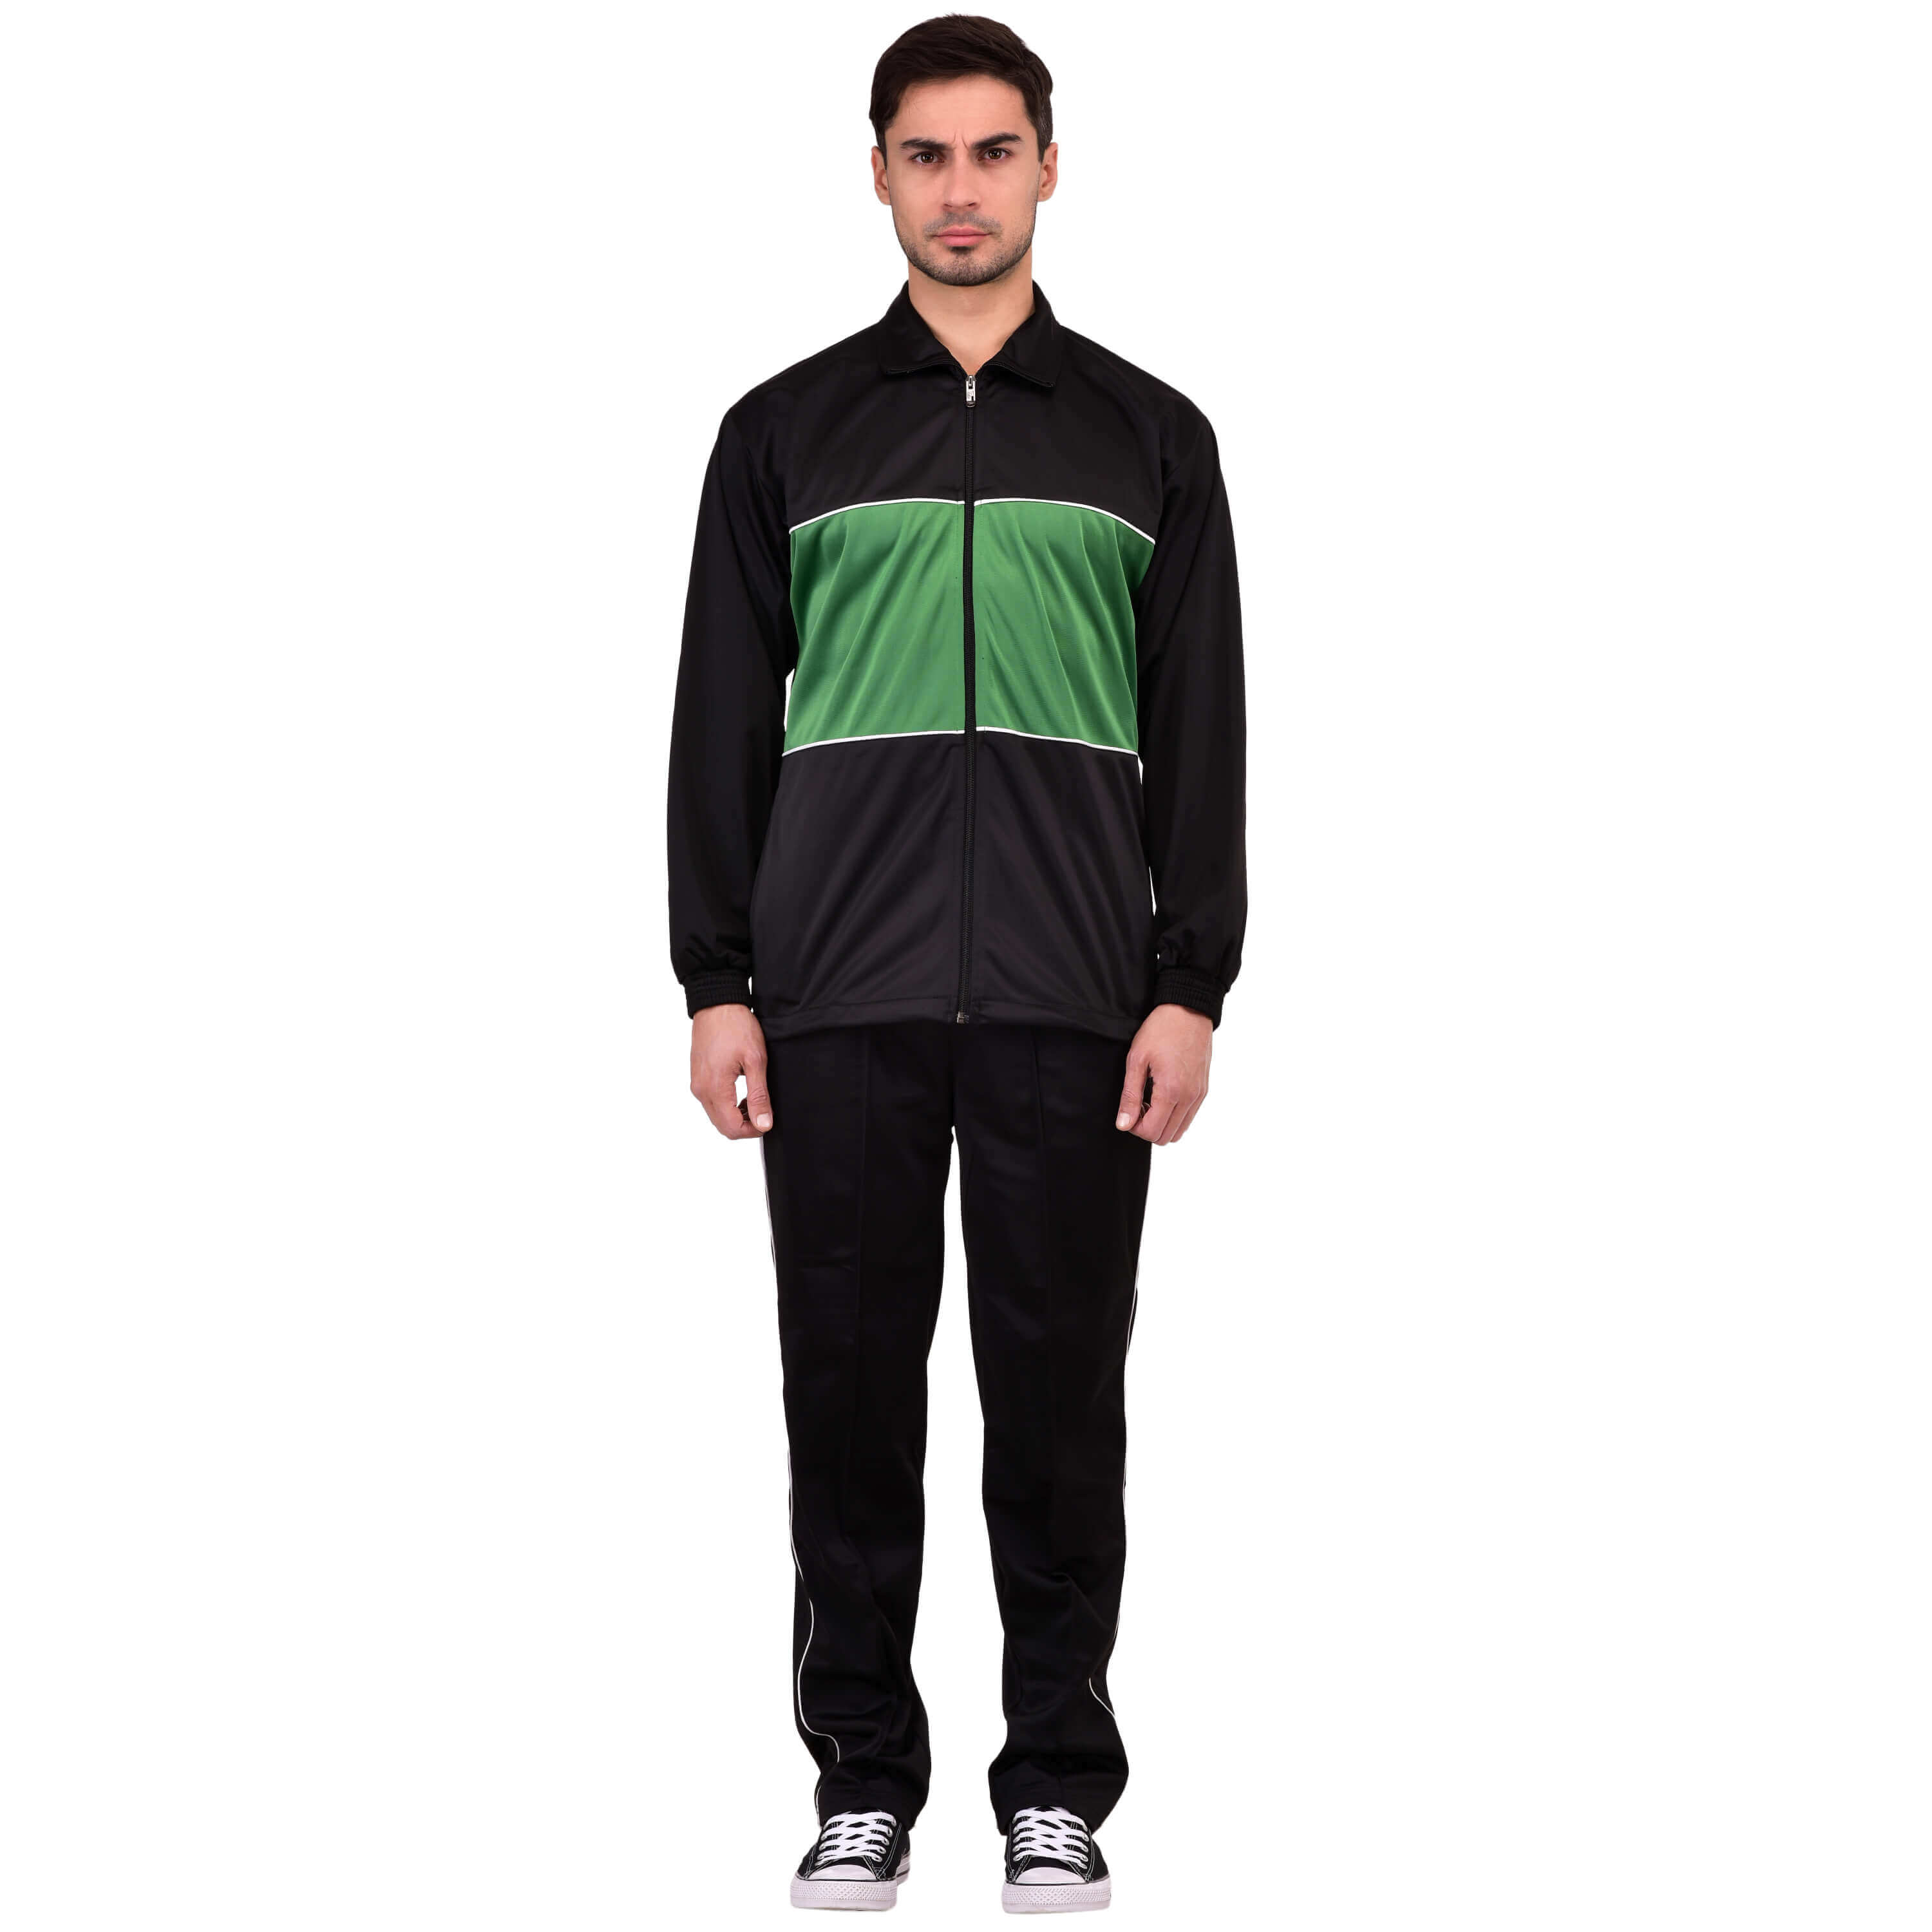 Full Tracksuit Manufacturers in United-states-of-america